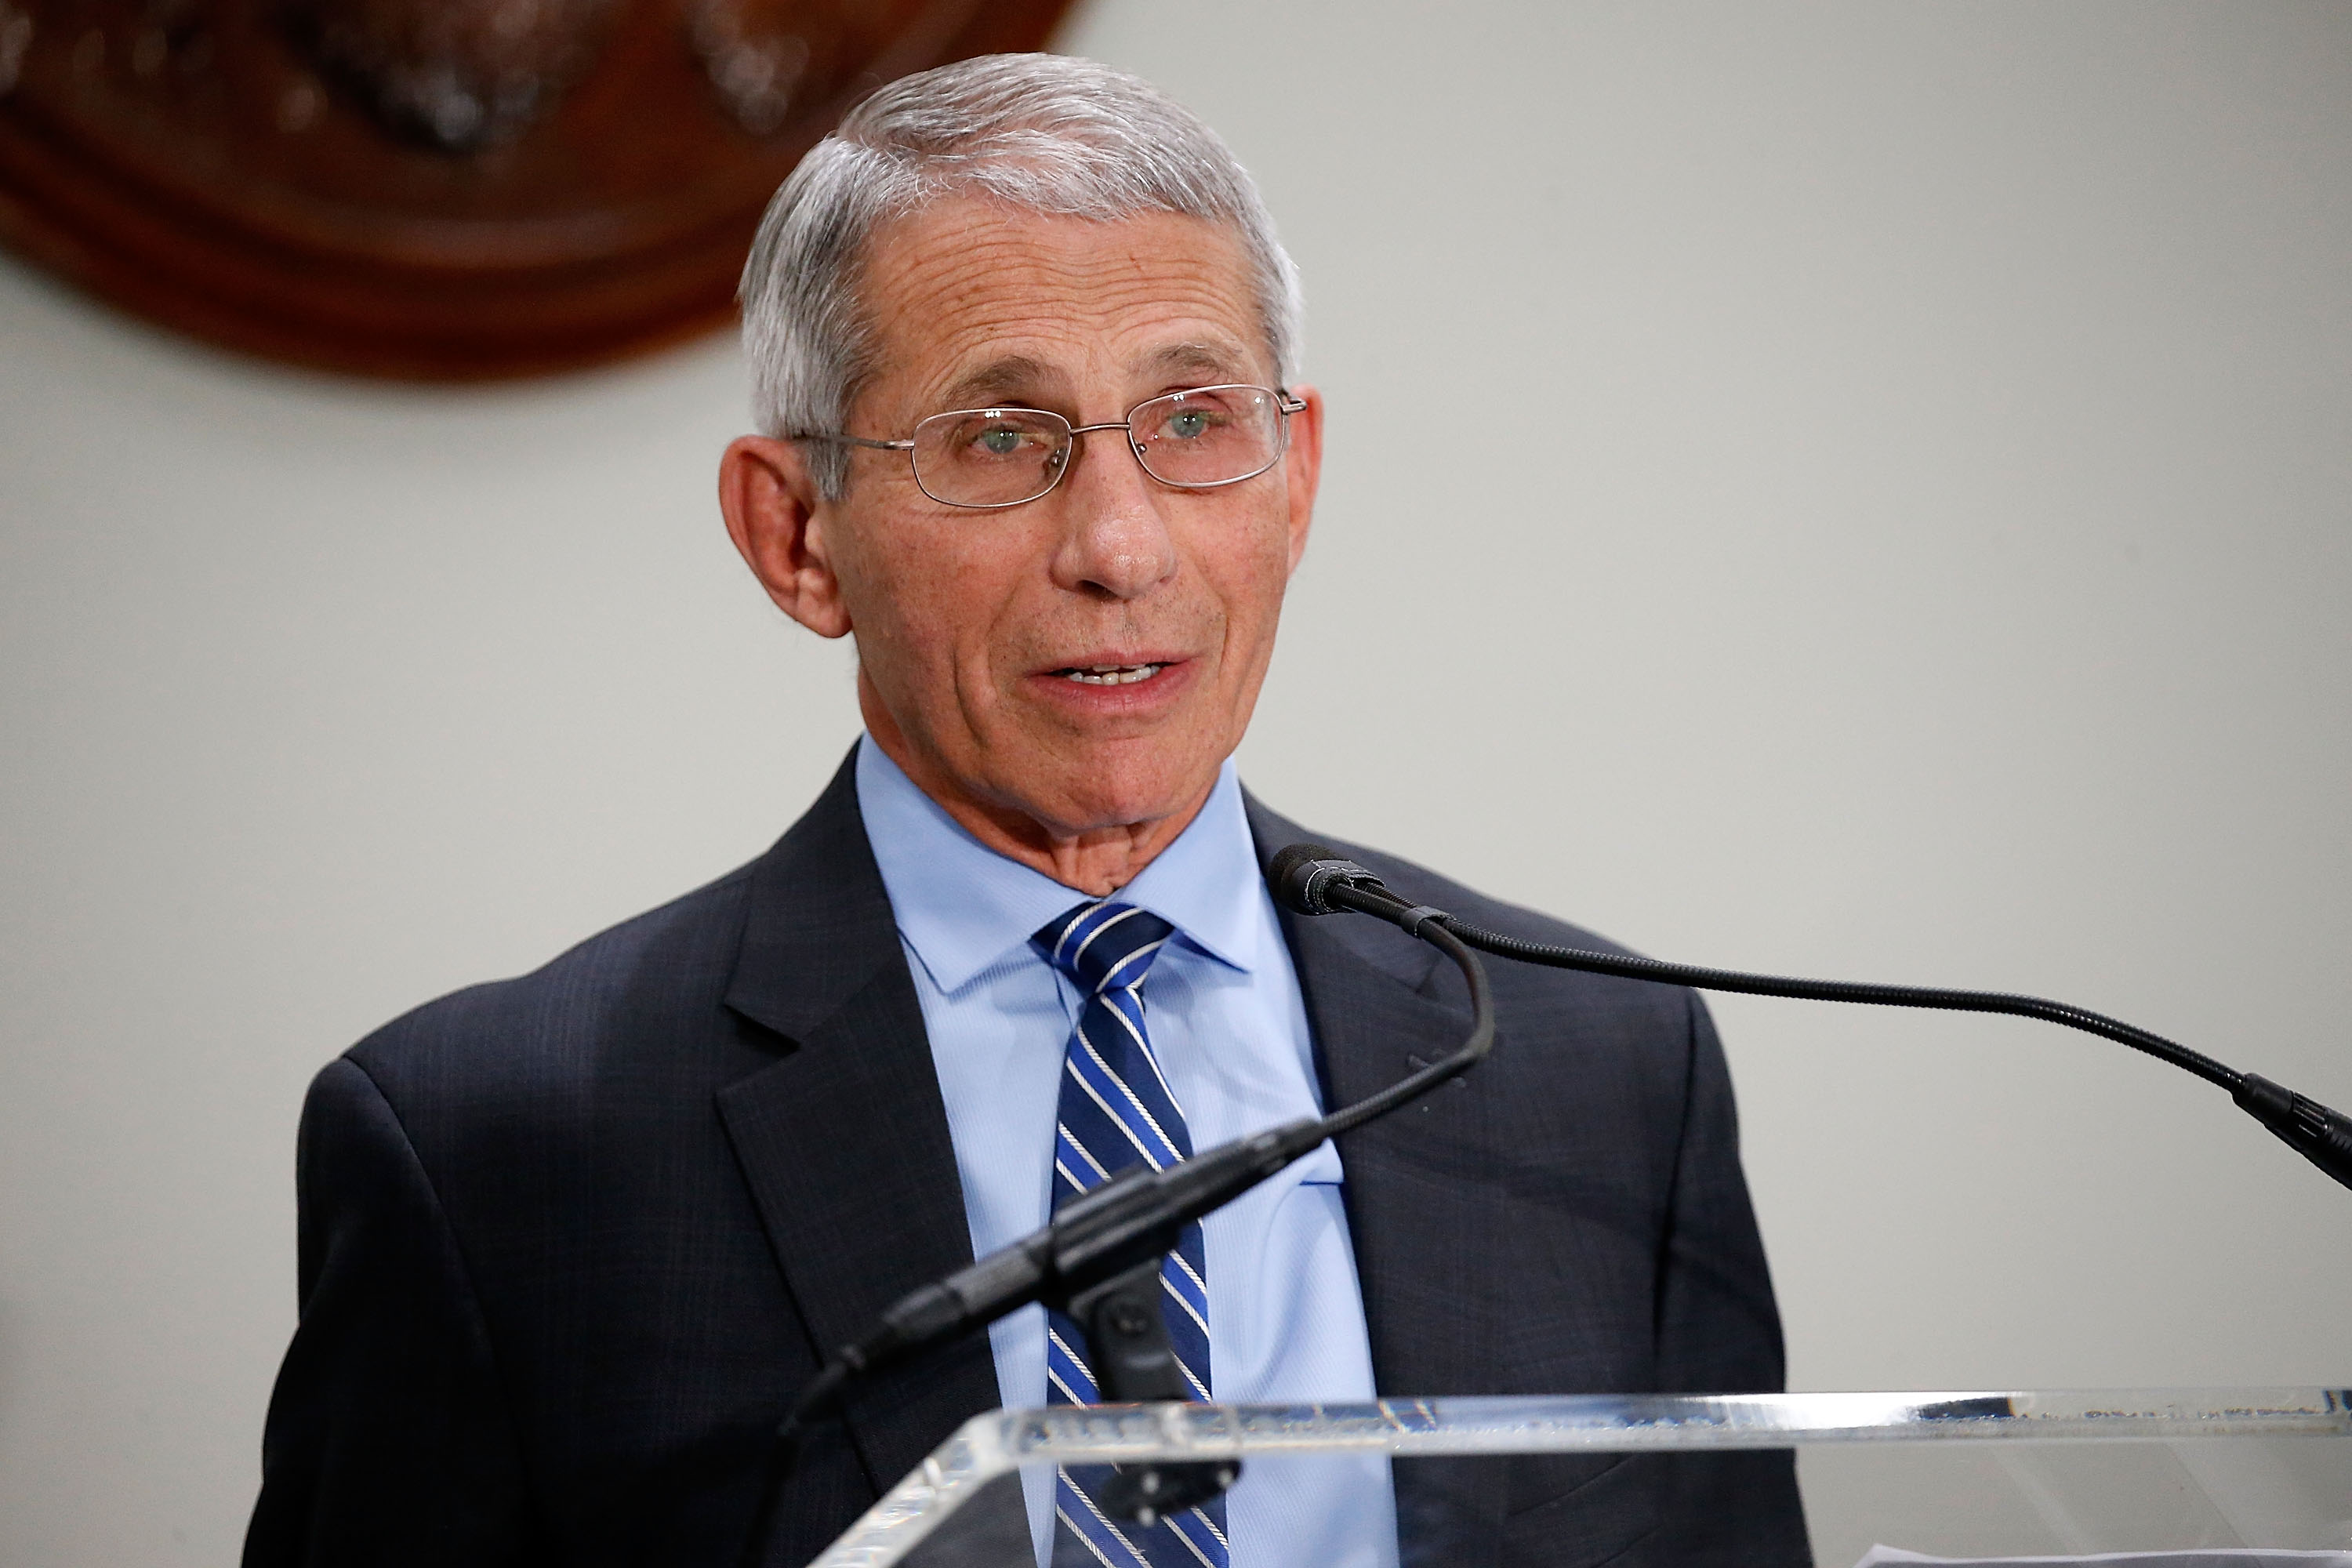 Fauci speaks in 2017.